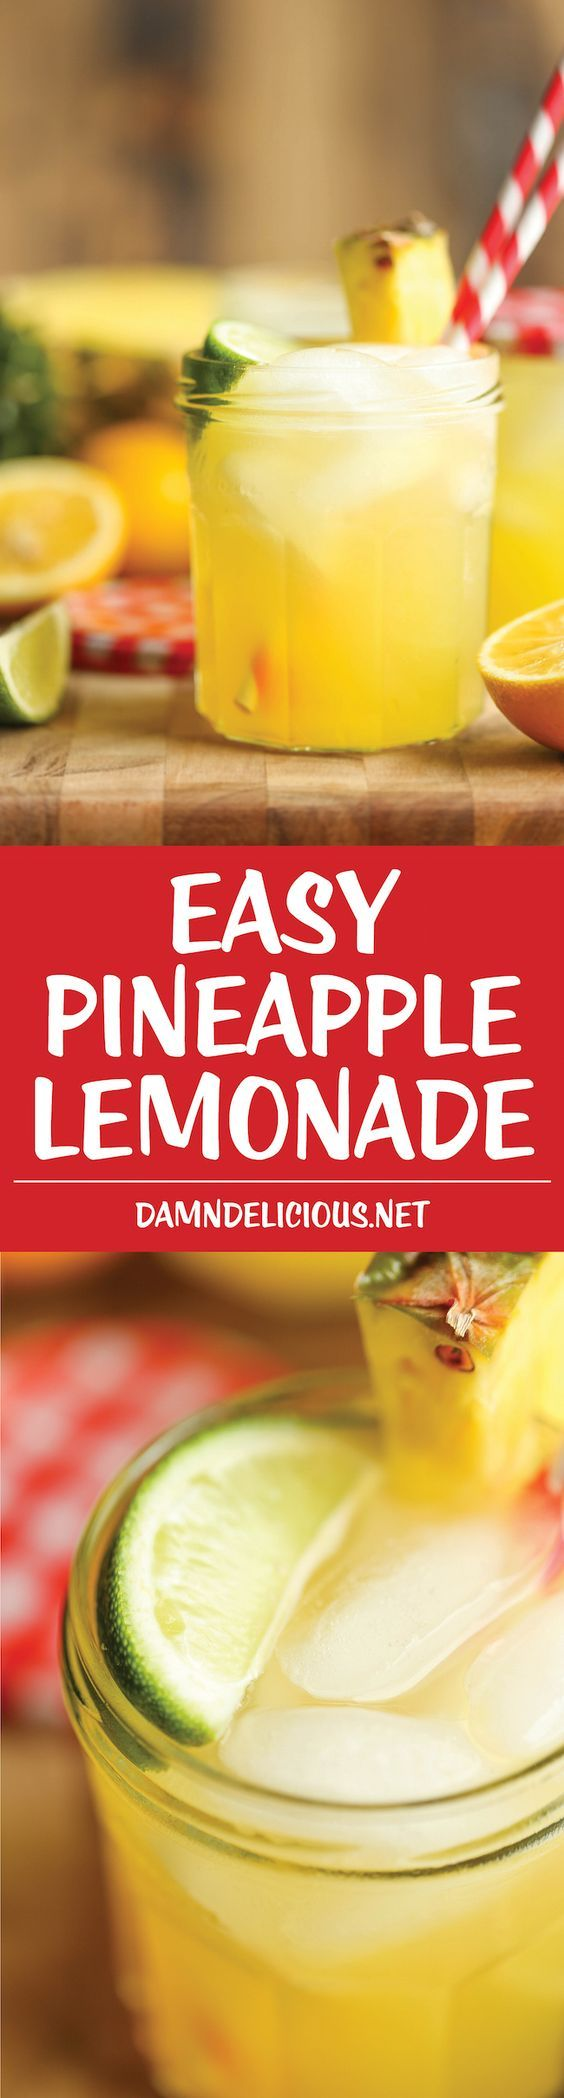 Pineapple Lemonade - So refreshing, so sweet, so tangy and just so wonderfully tropical. It's also unbelievably easy to whip up!